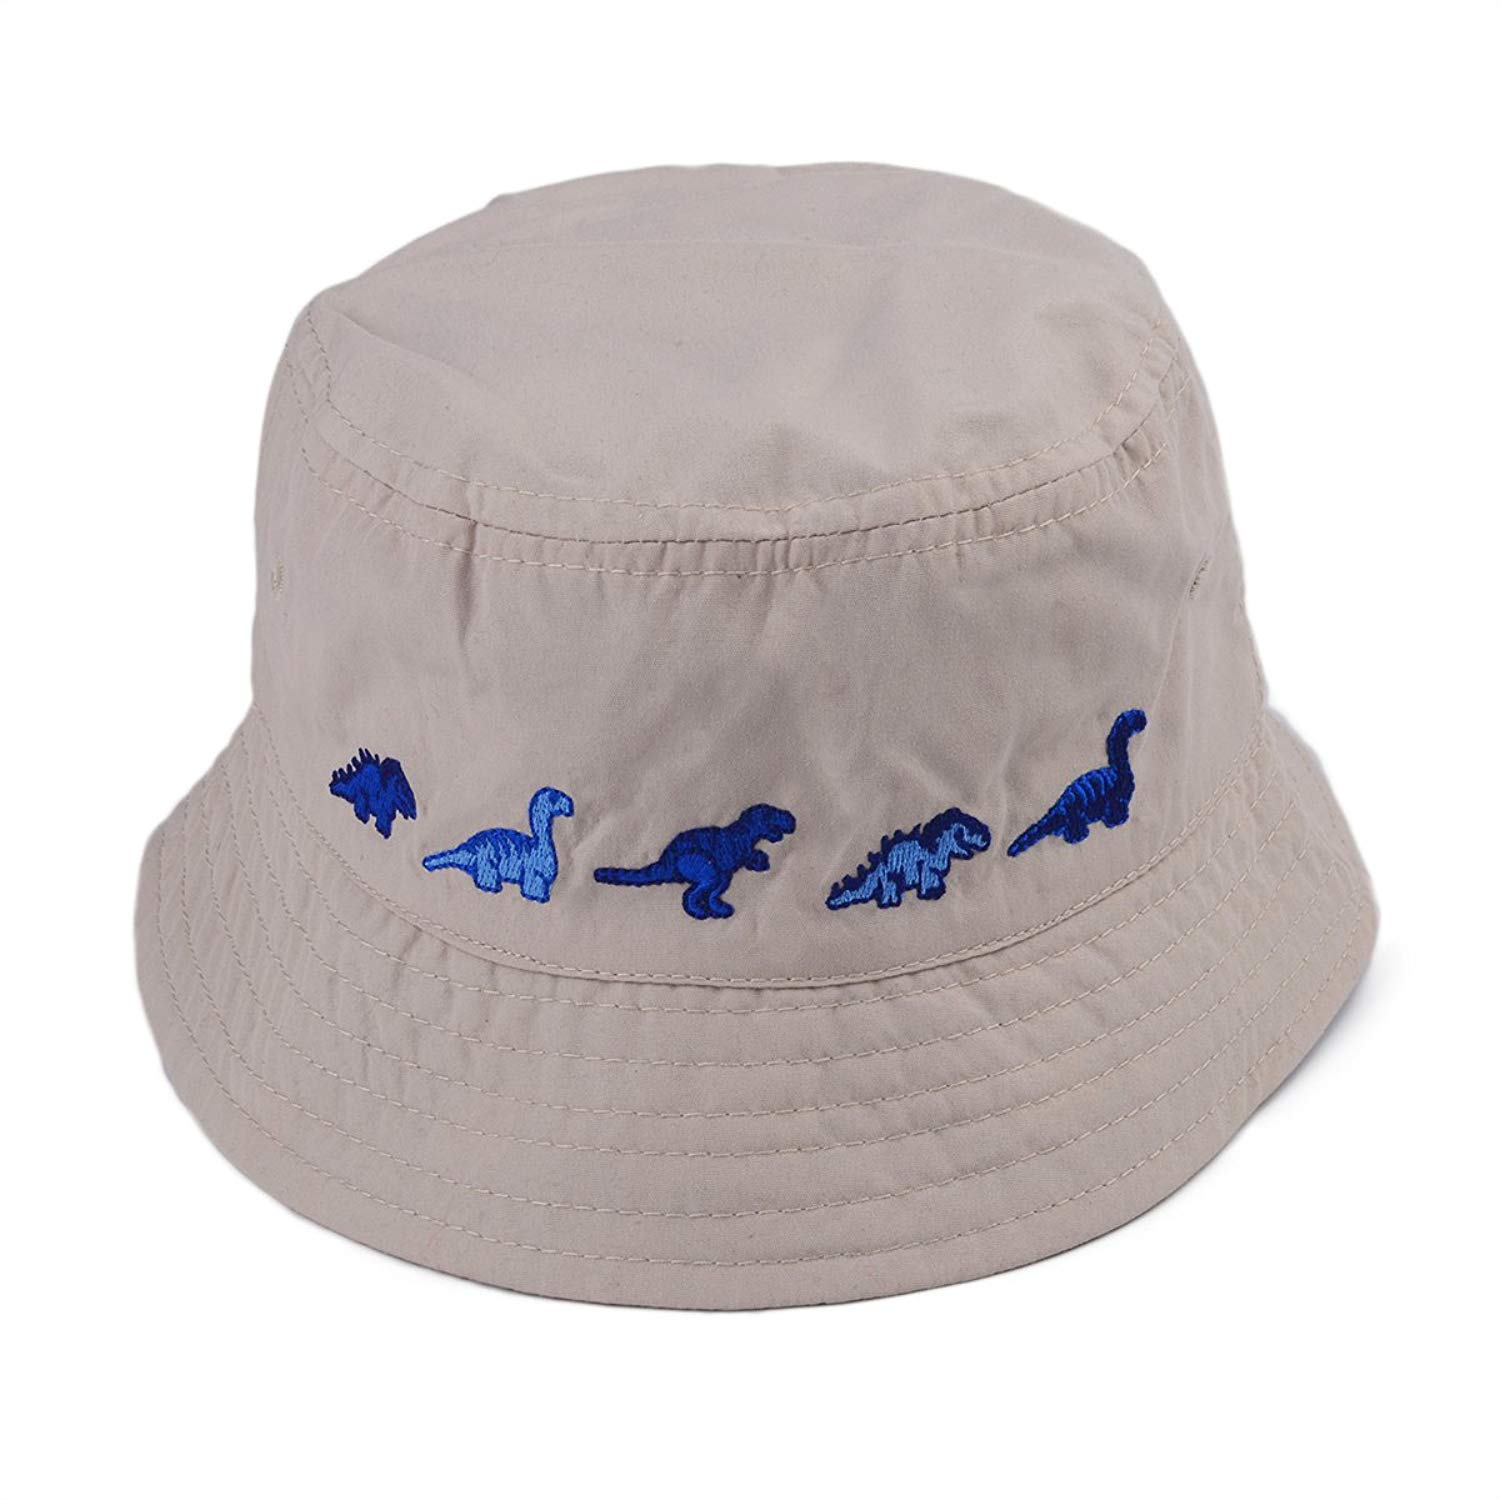 333f2ec96aa Get Quotations · Baby Boys Toddler Cotton Bucket Hat Reversible Sun Hat UV  Protection